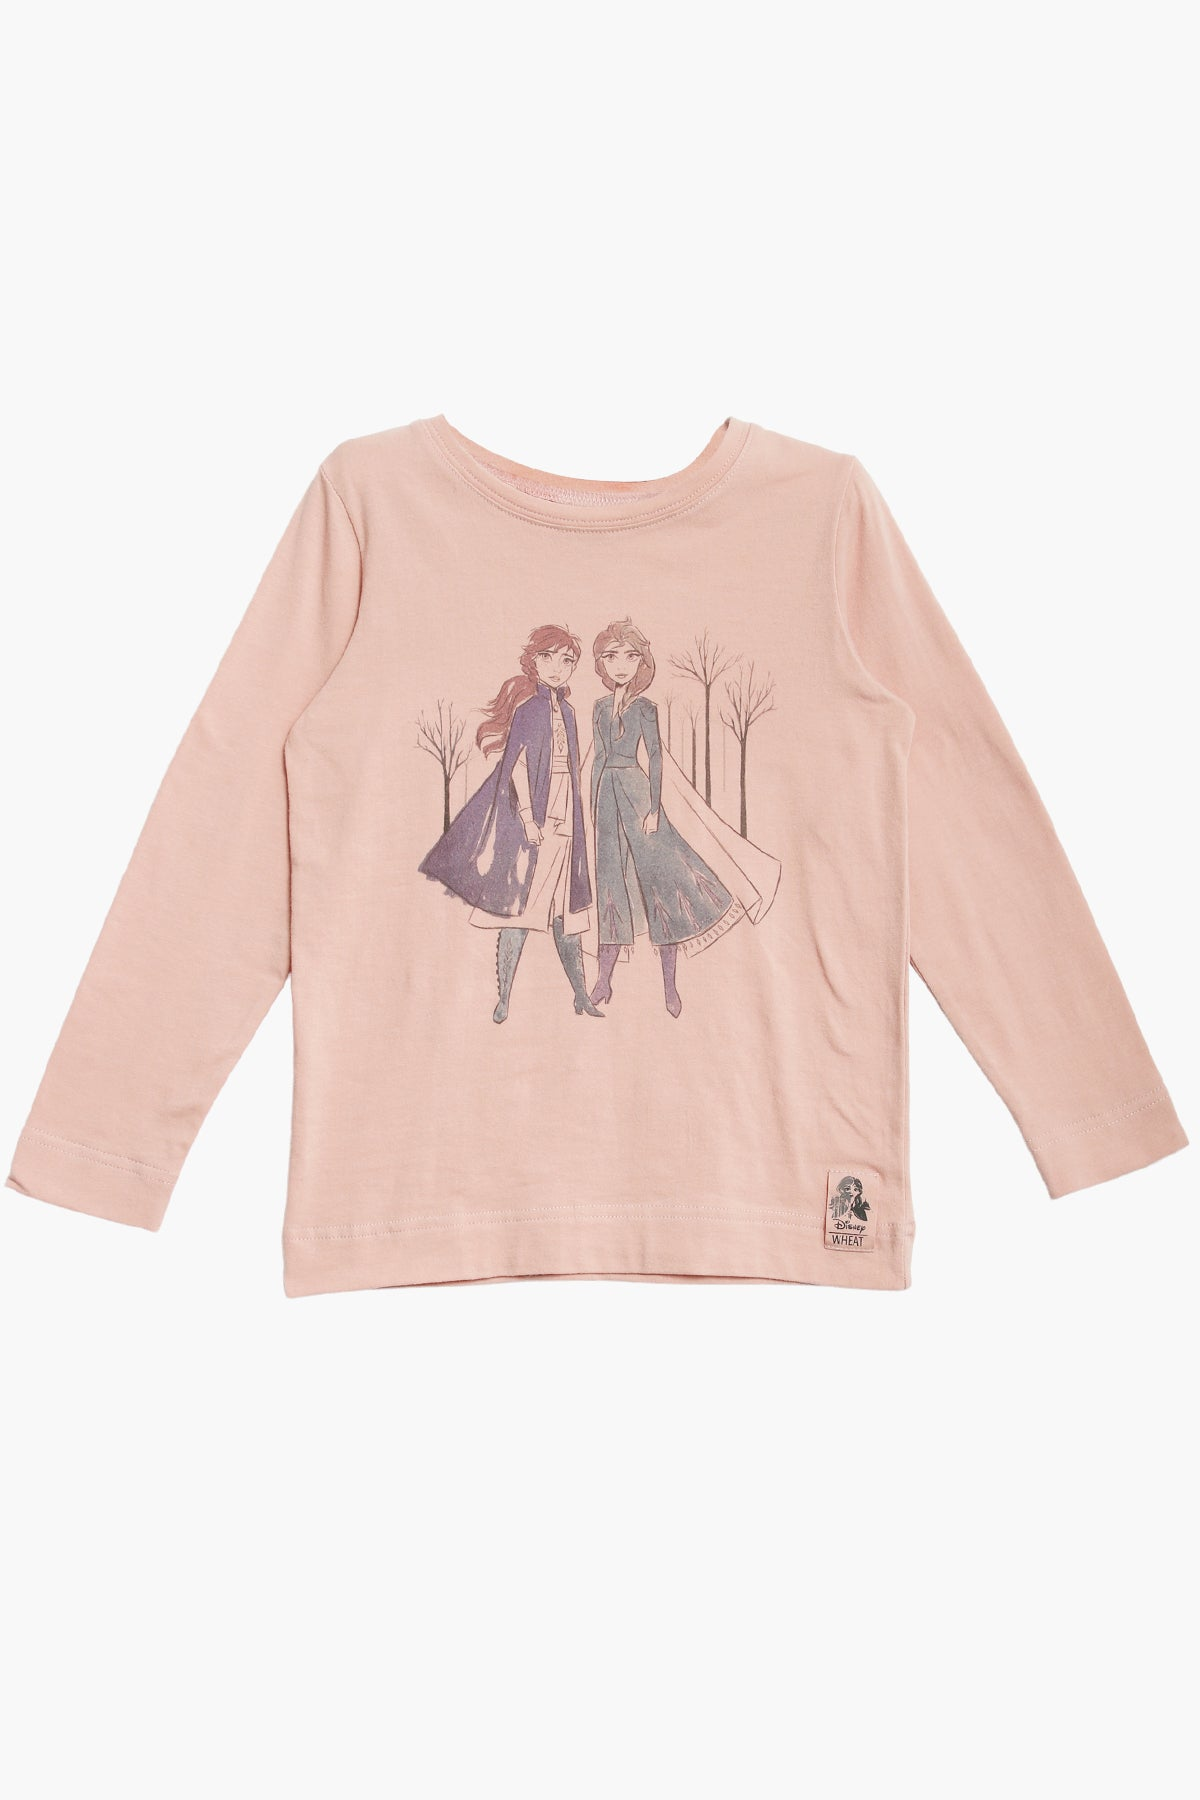 Wheat Disney Frozen Anna & Elsa Girls Shirt